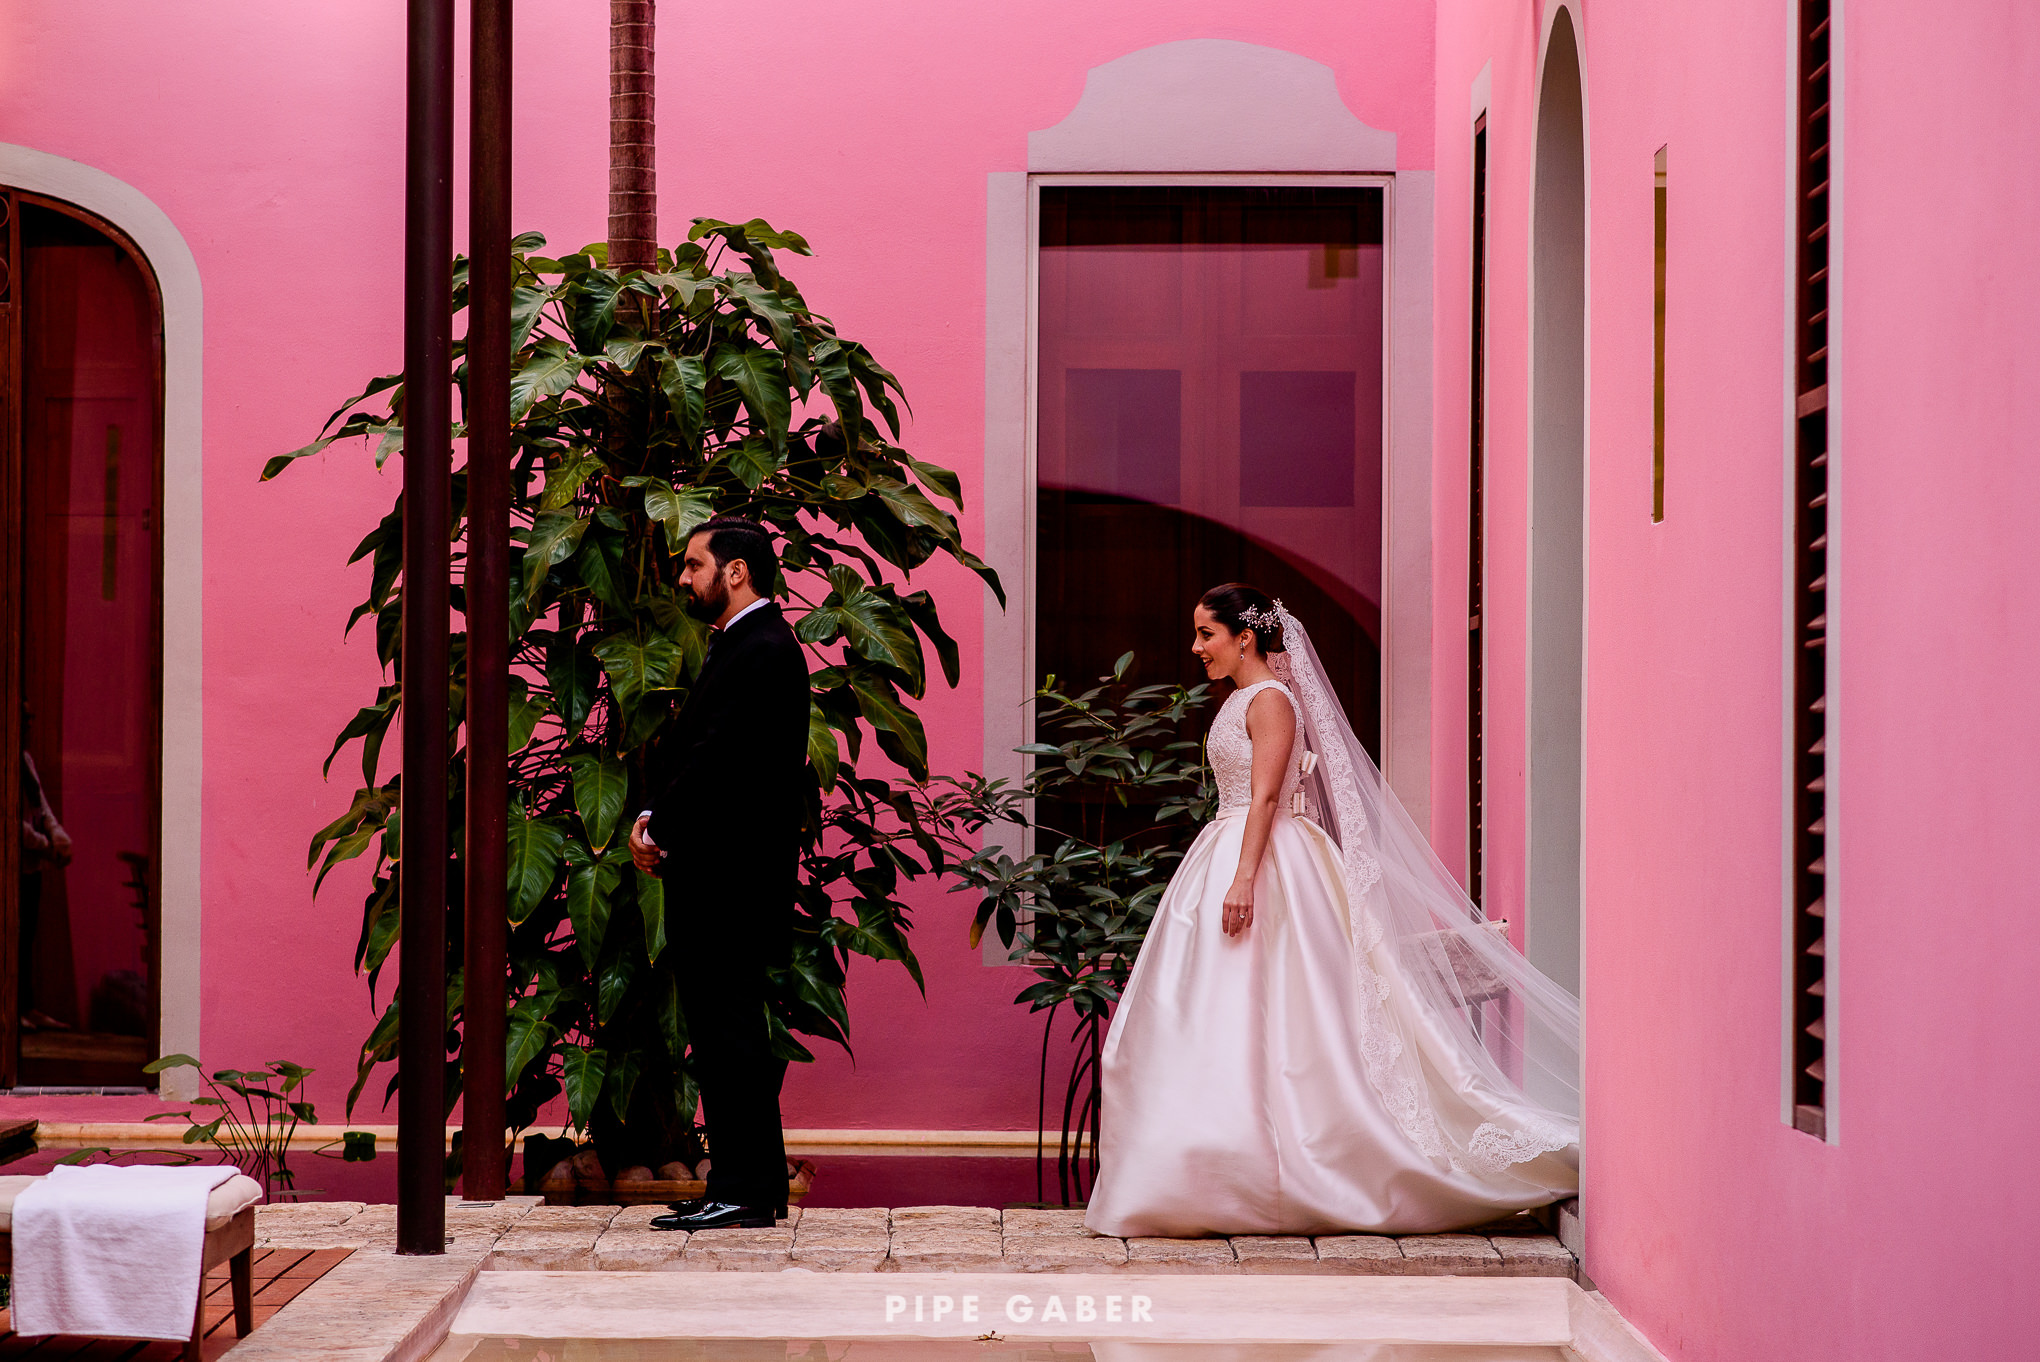 MERIDA_YUCATAN_WEDDINGS_BY_PIPE_GABER02.JPG